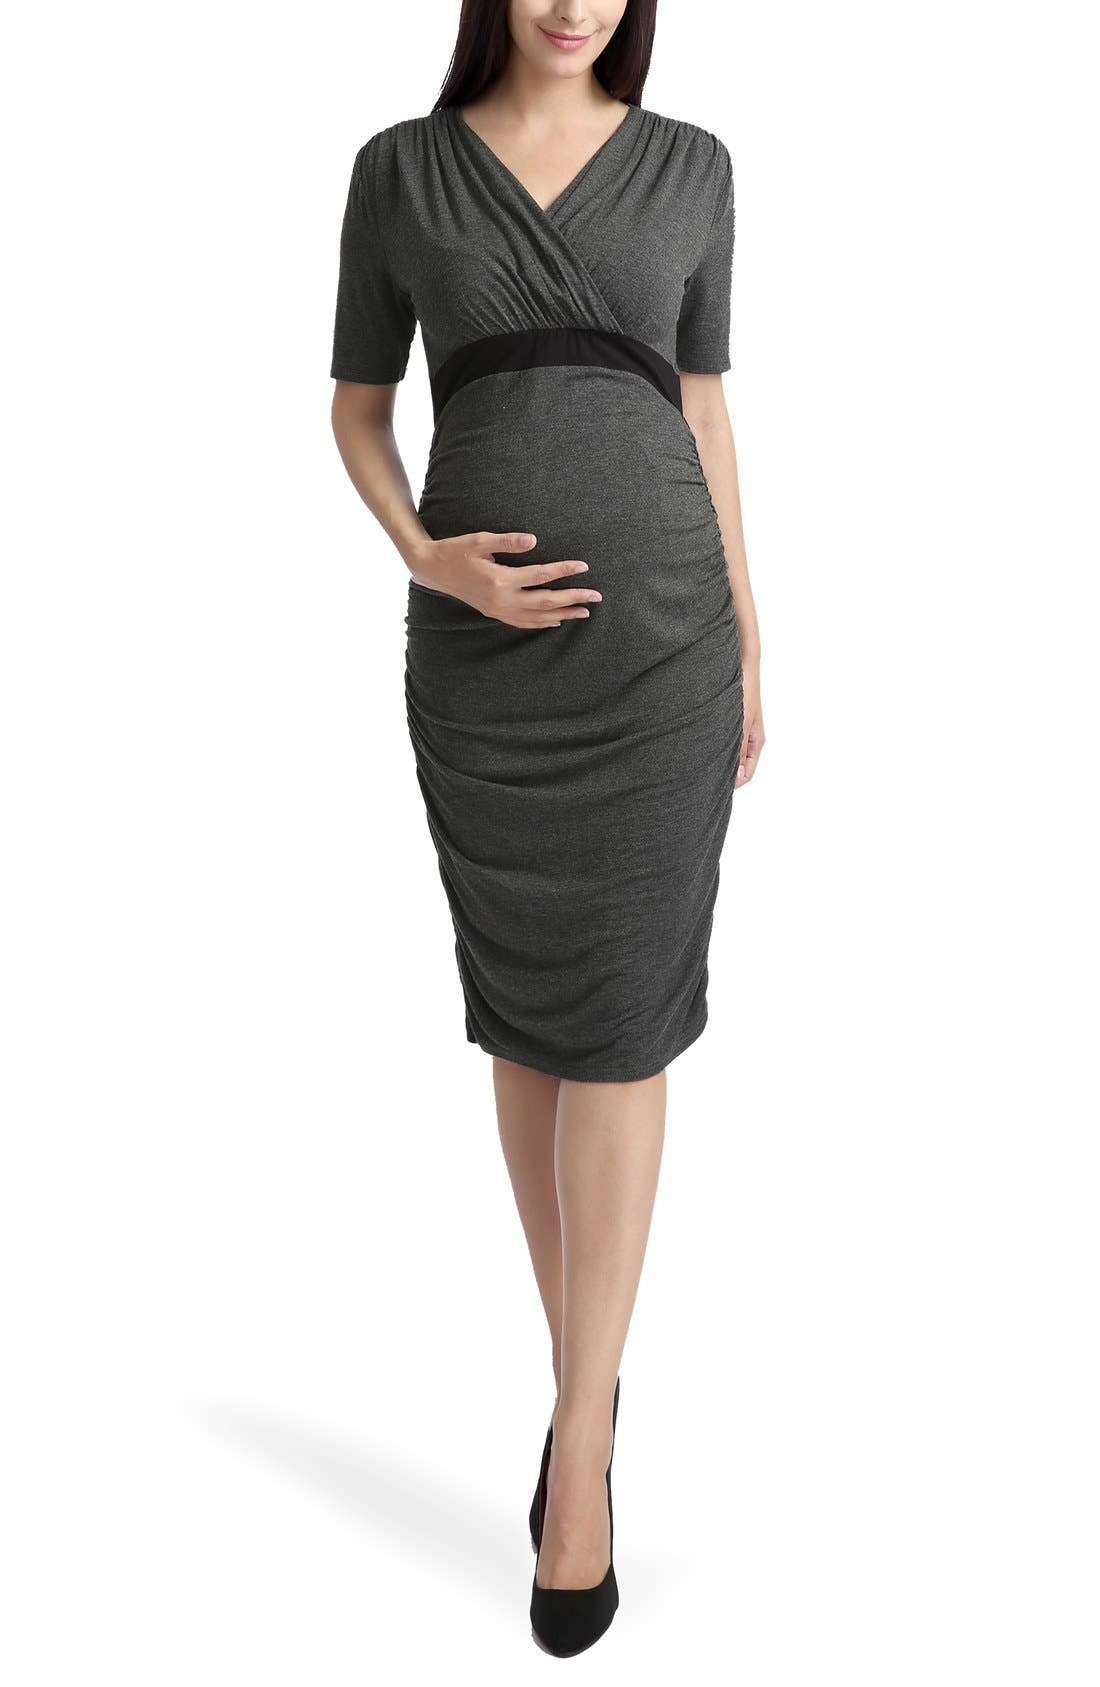 KIMI AND KAI 'Lydia' Maternity Dress